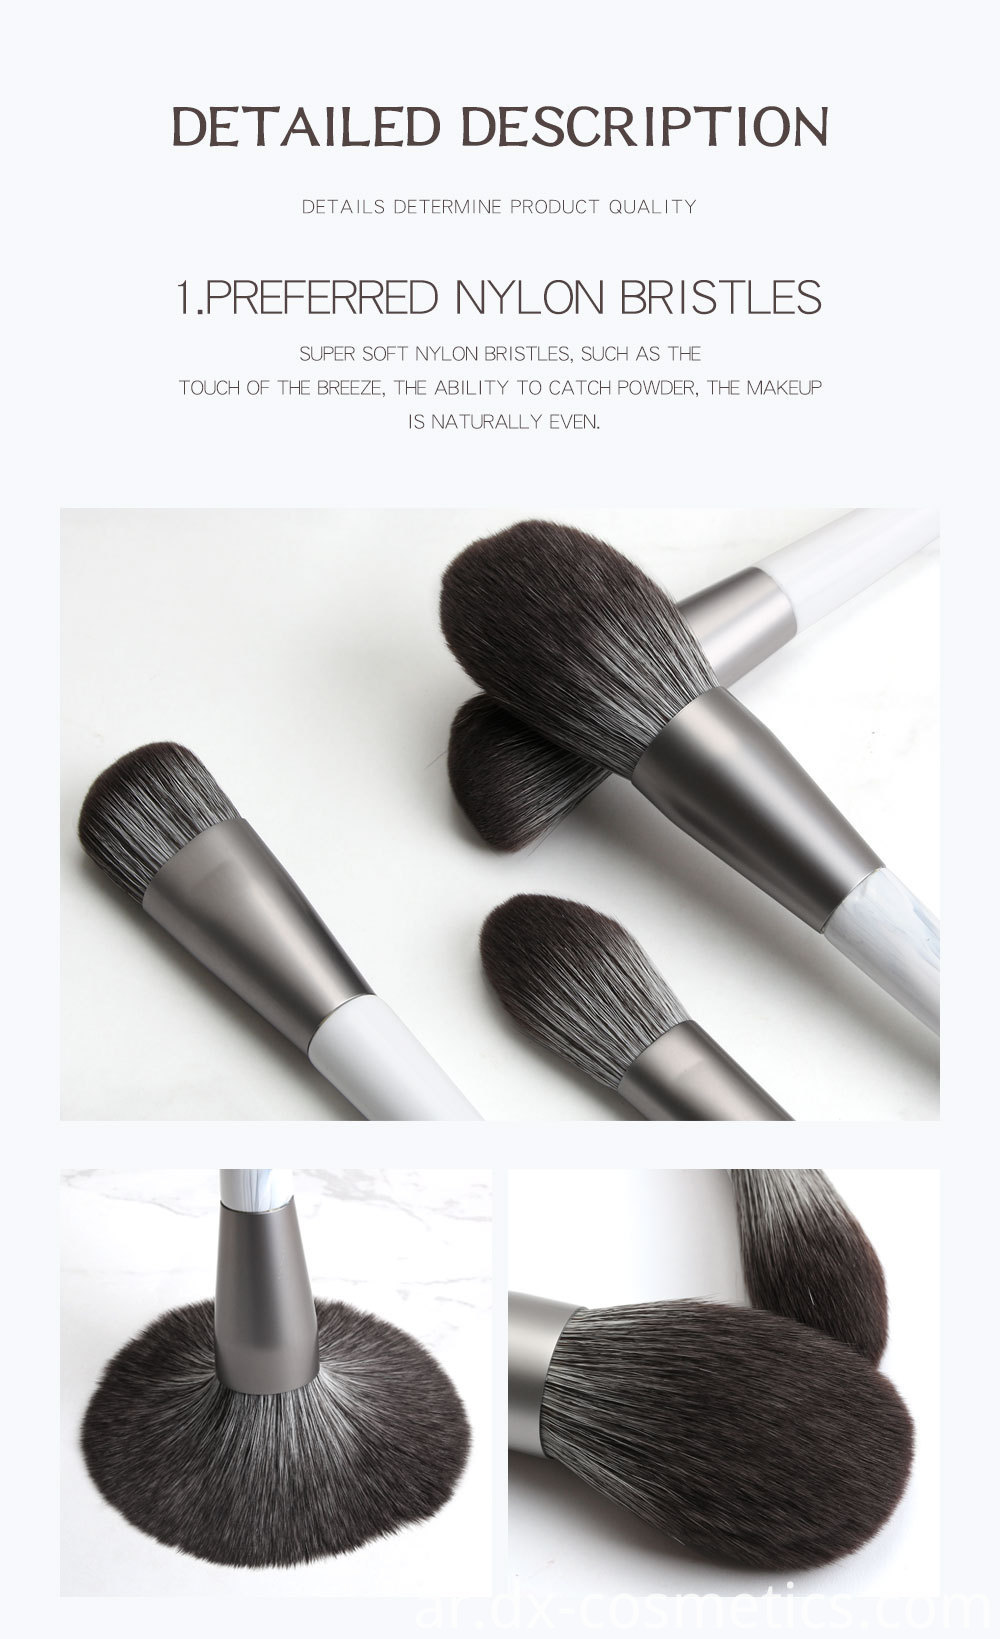 12 Piece Bunch Flower Makeup Brushes 3